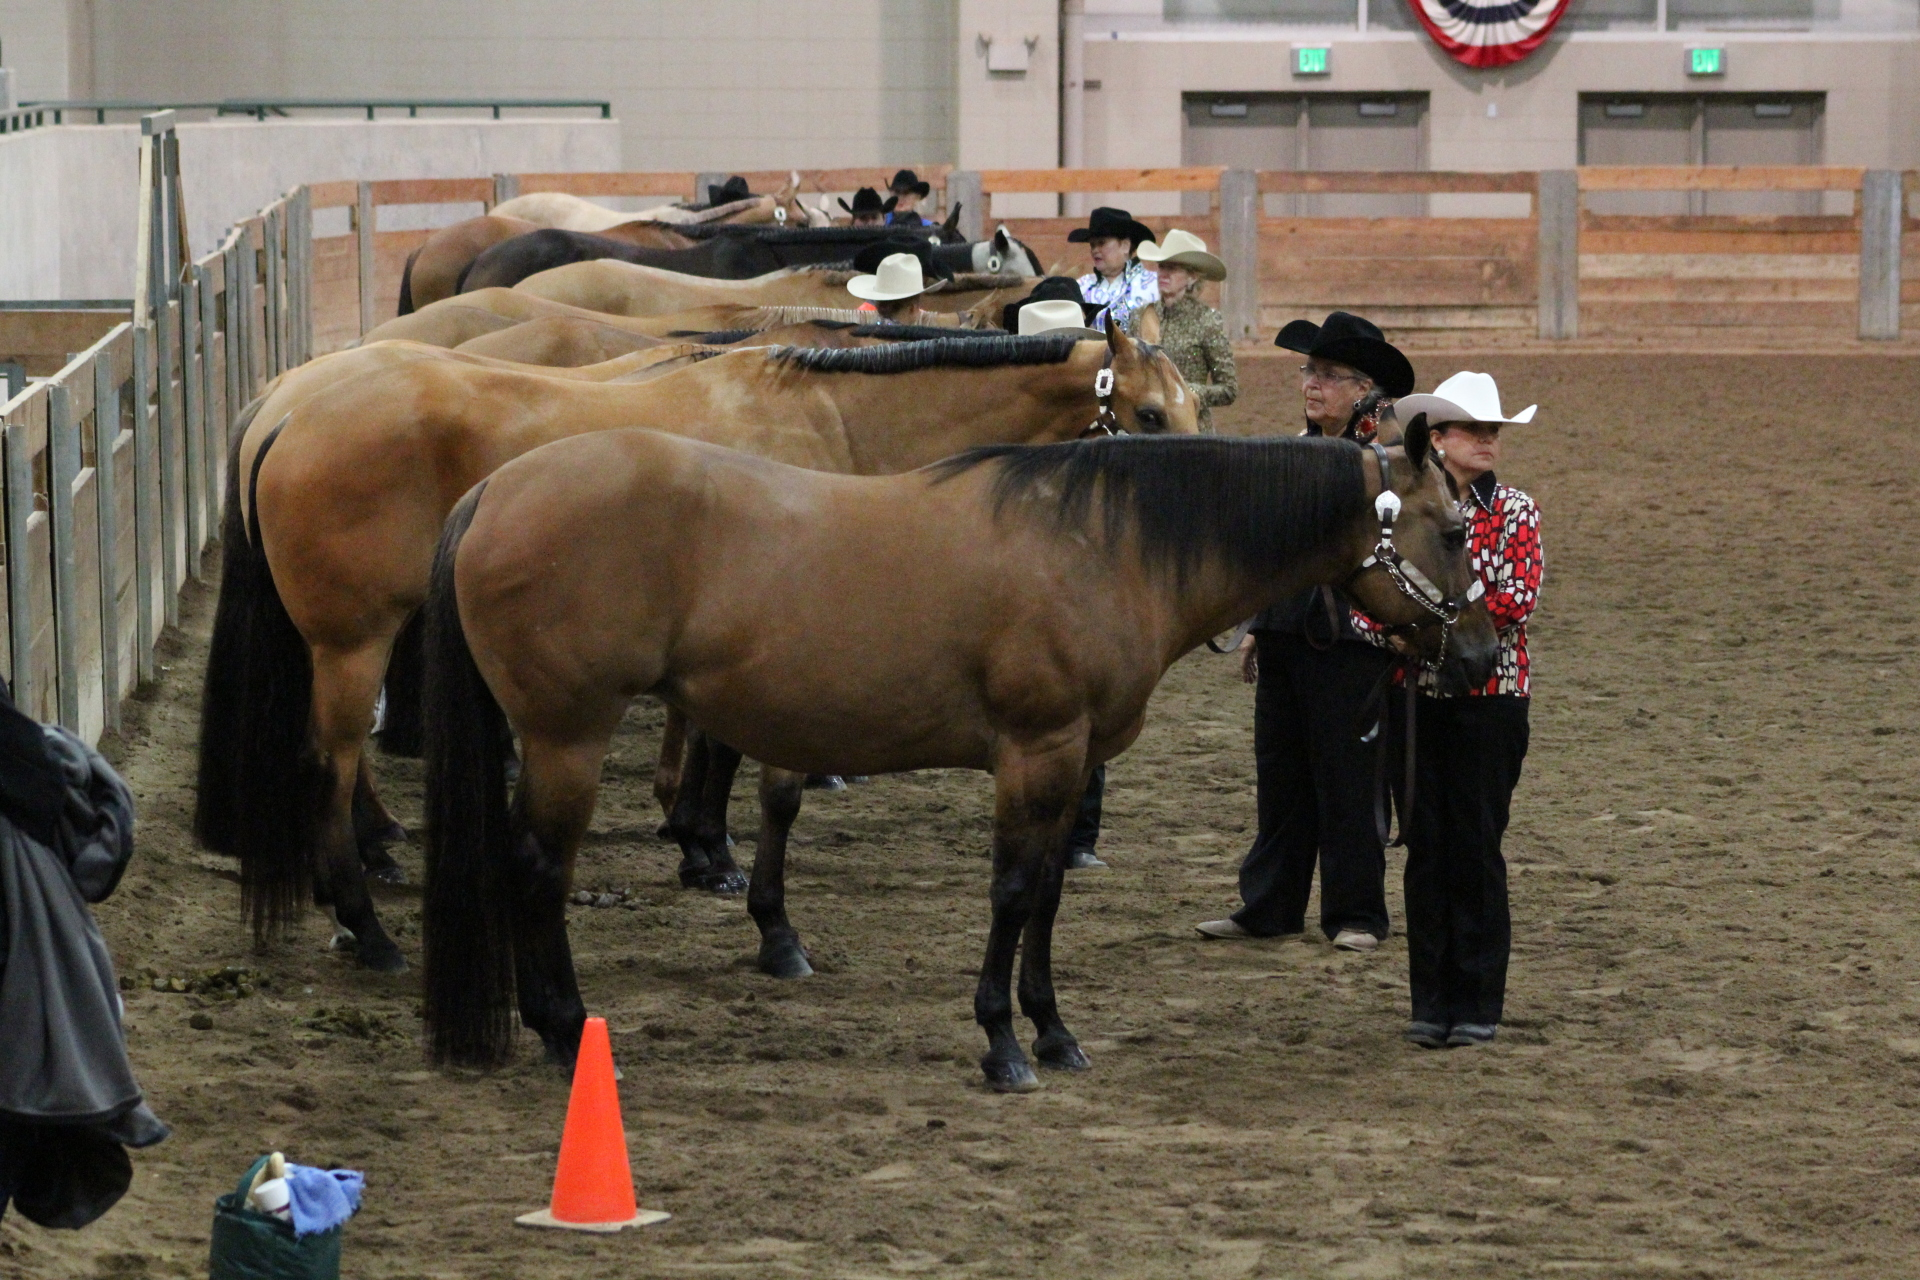 Show Some Love - Send Us Your Senior Horse Success Stories In the Show Pen